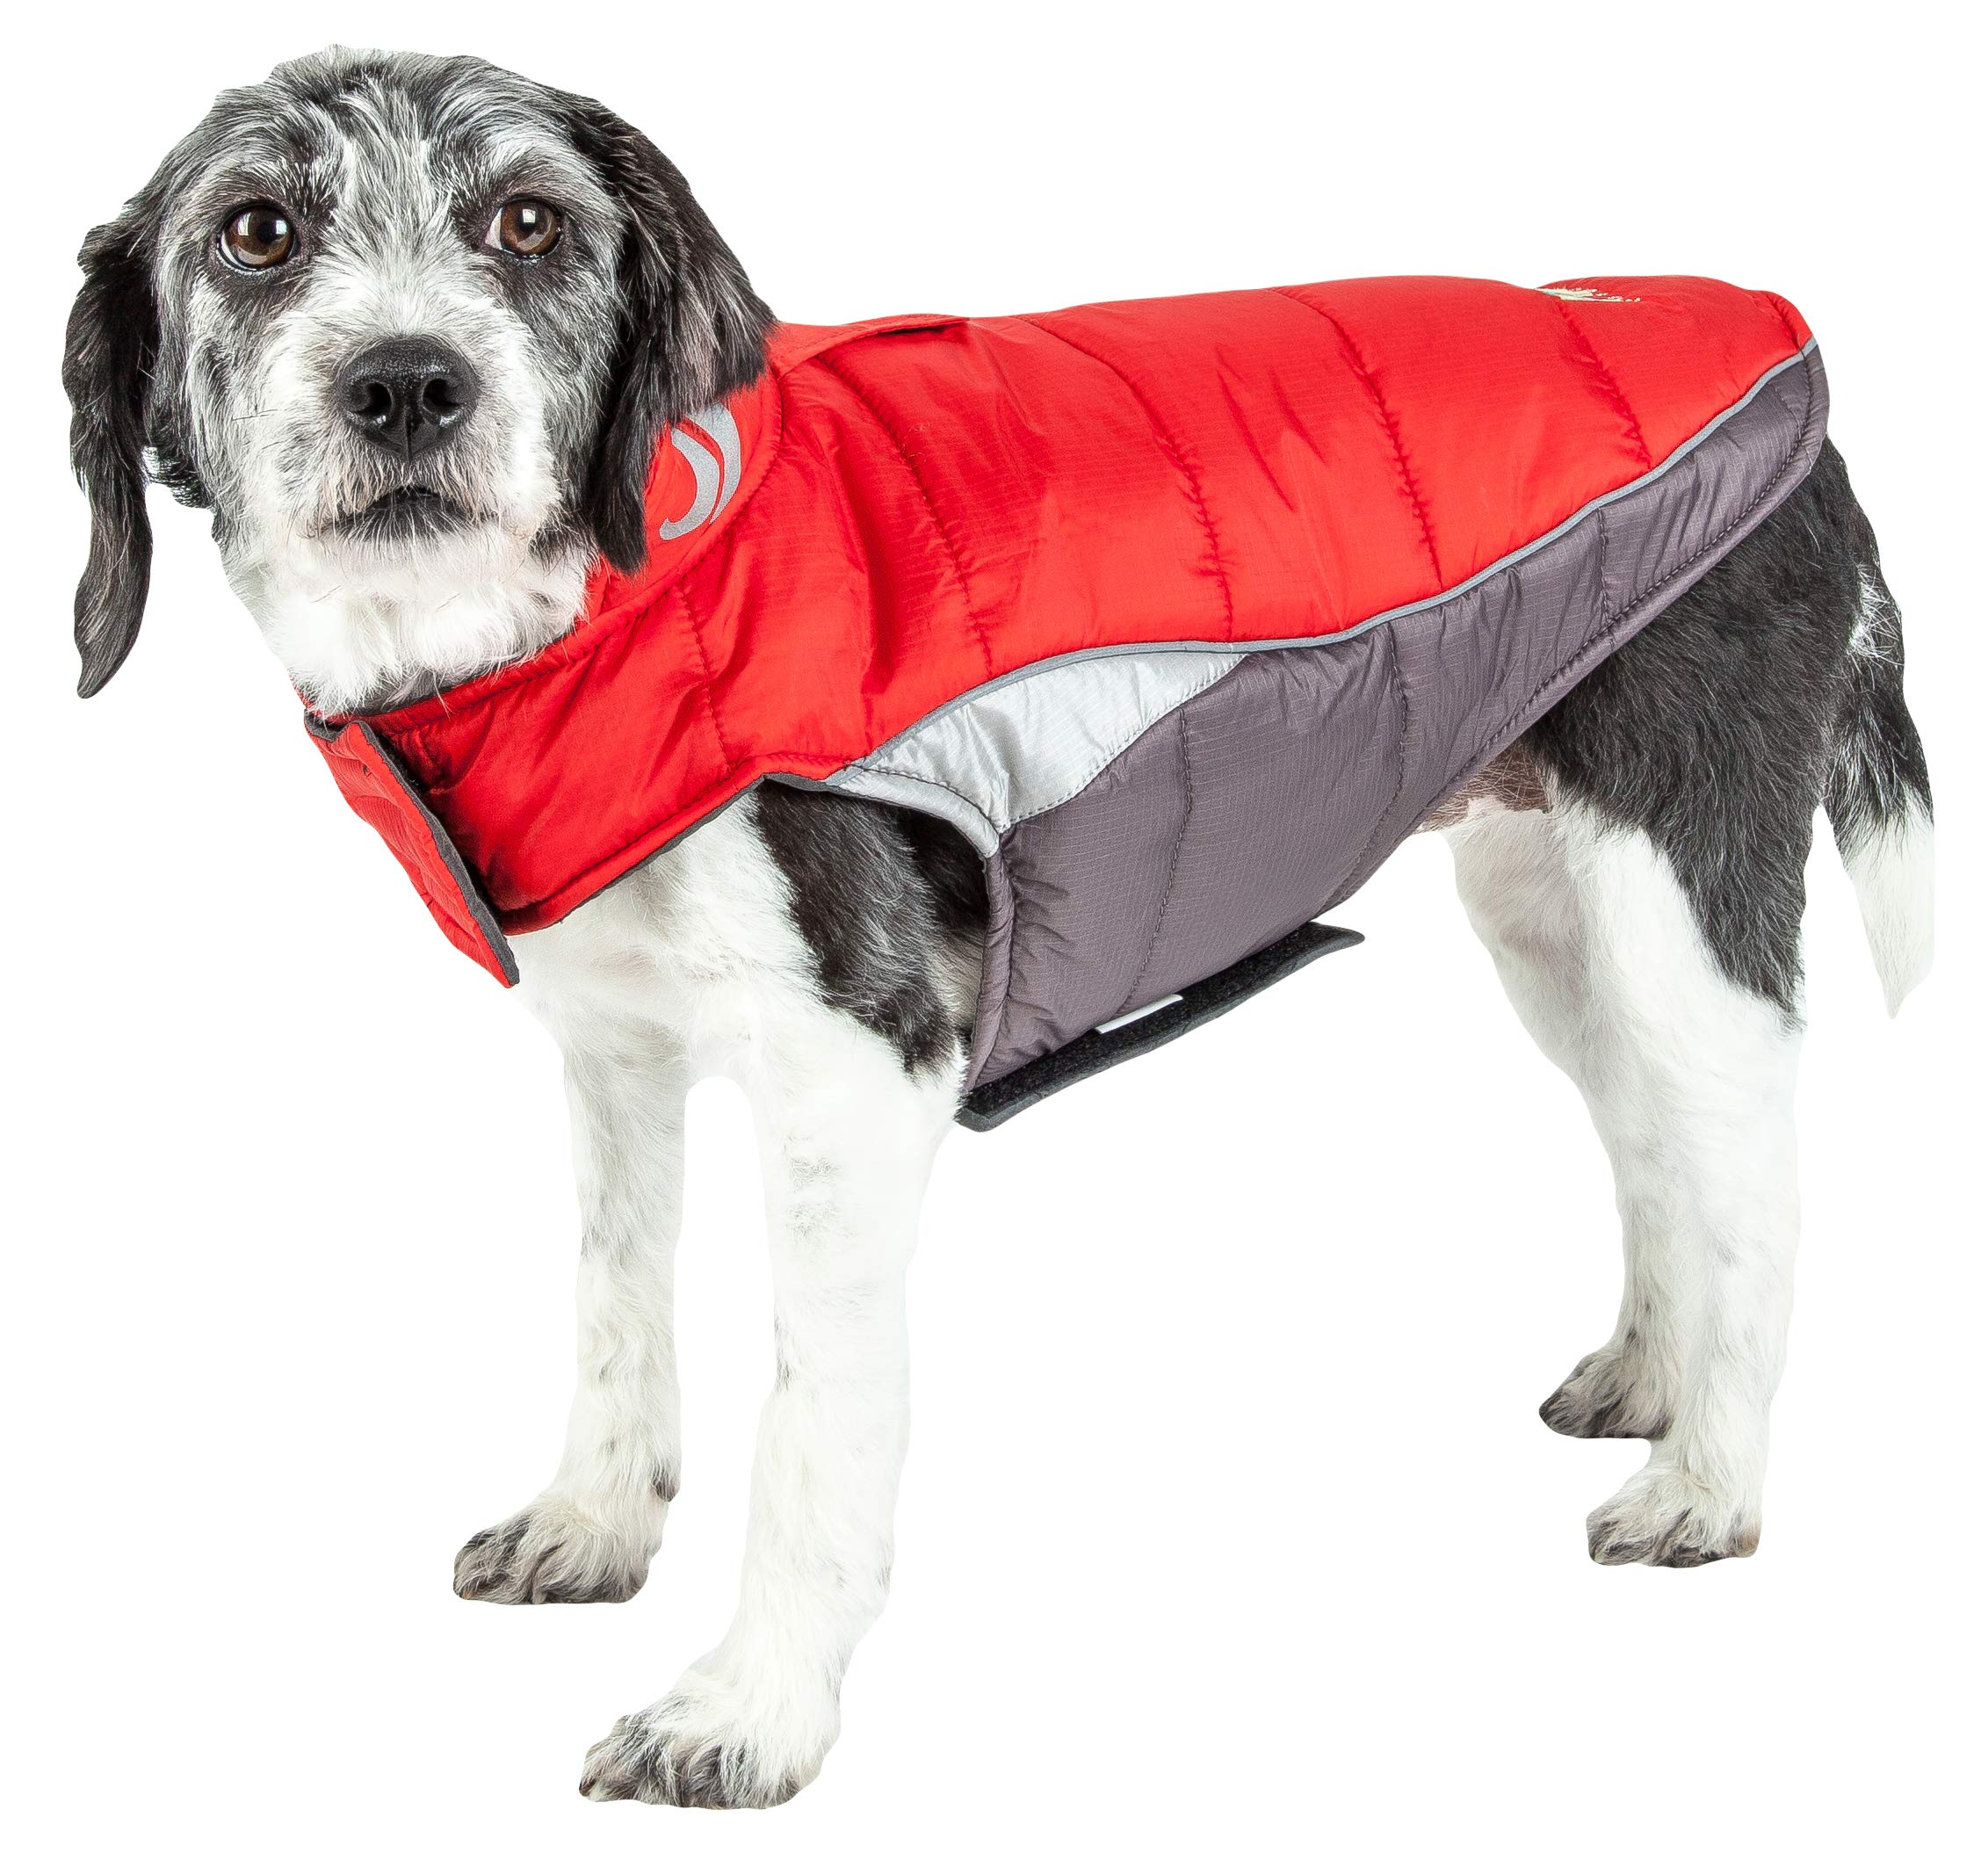 DOGHELIOS 'Hurricane-Waded' Plush Adjustable 3M Reflective Insulated Winter Pet Dog Coat Jacket w/ Blackshark technology, Large, Molten Lava Red by DogHelios